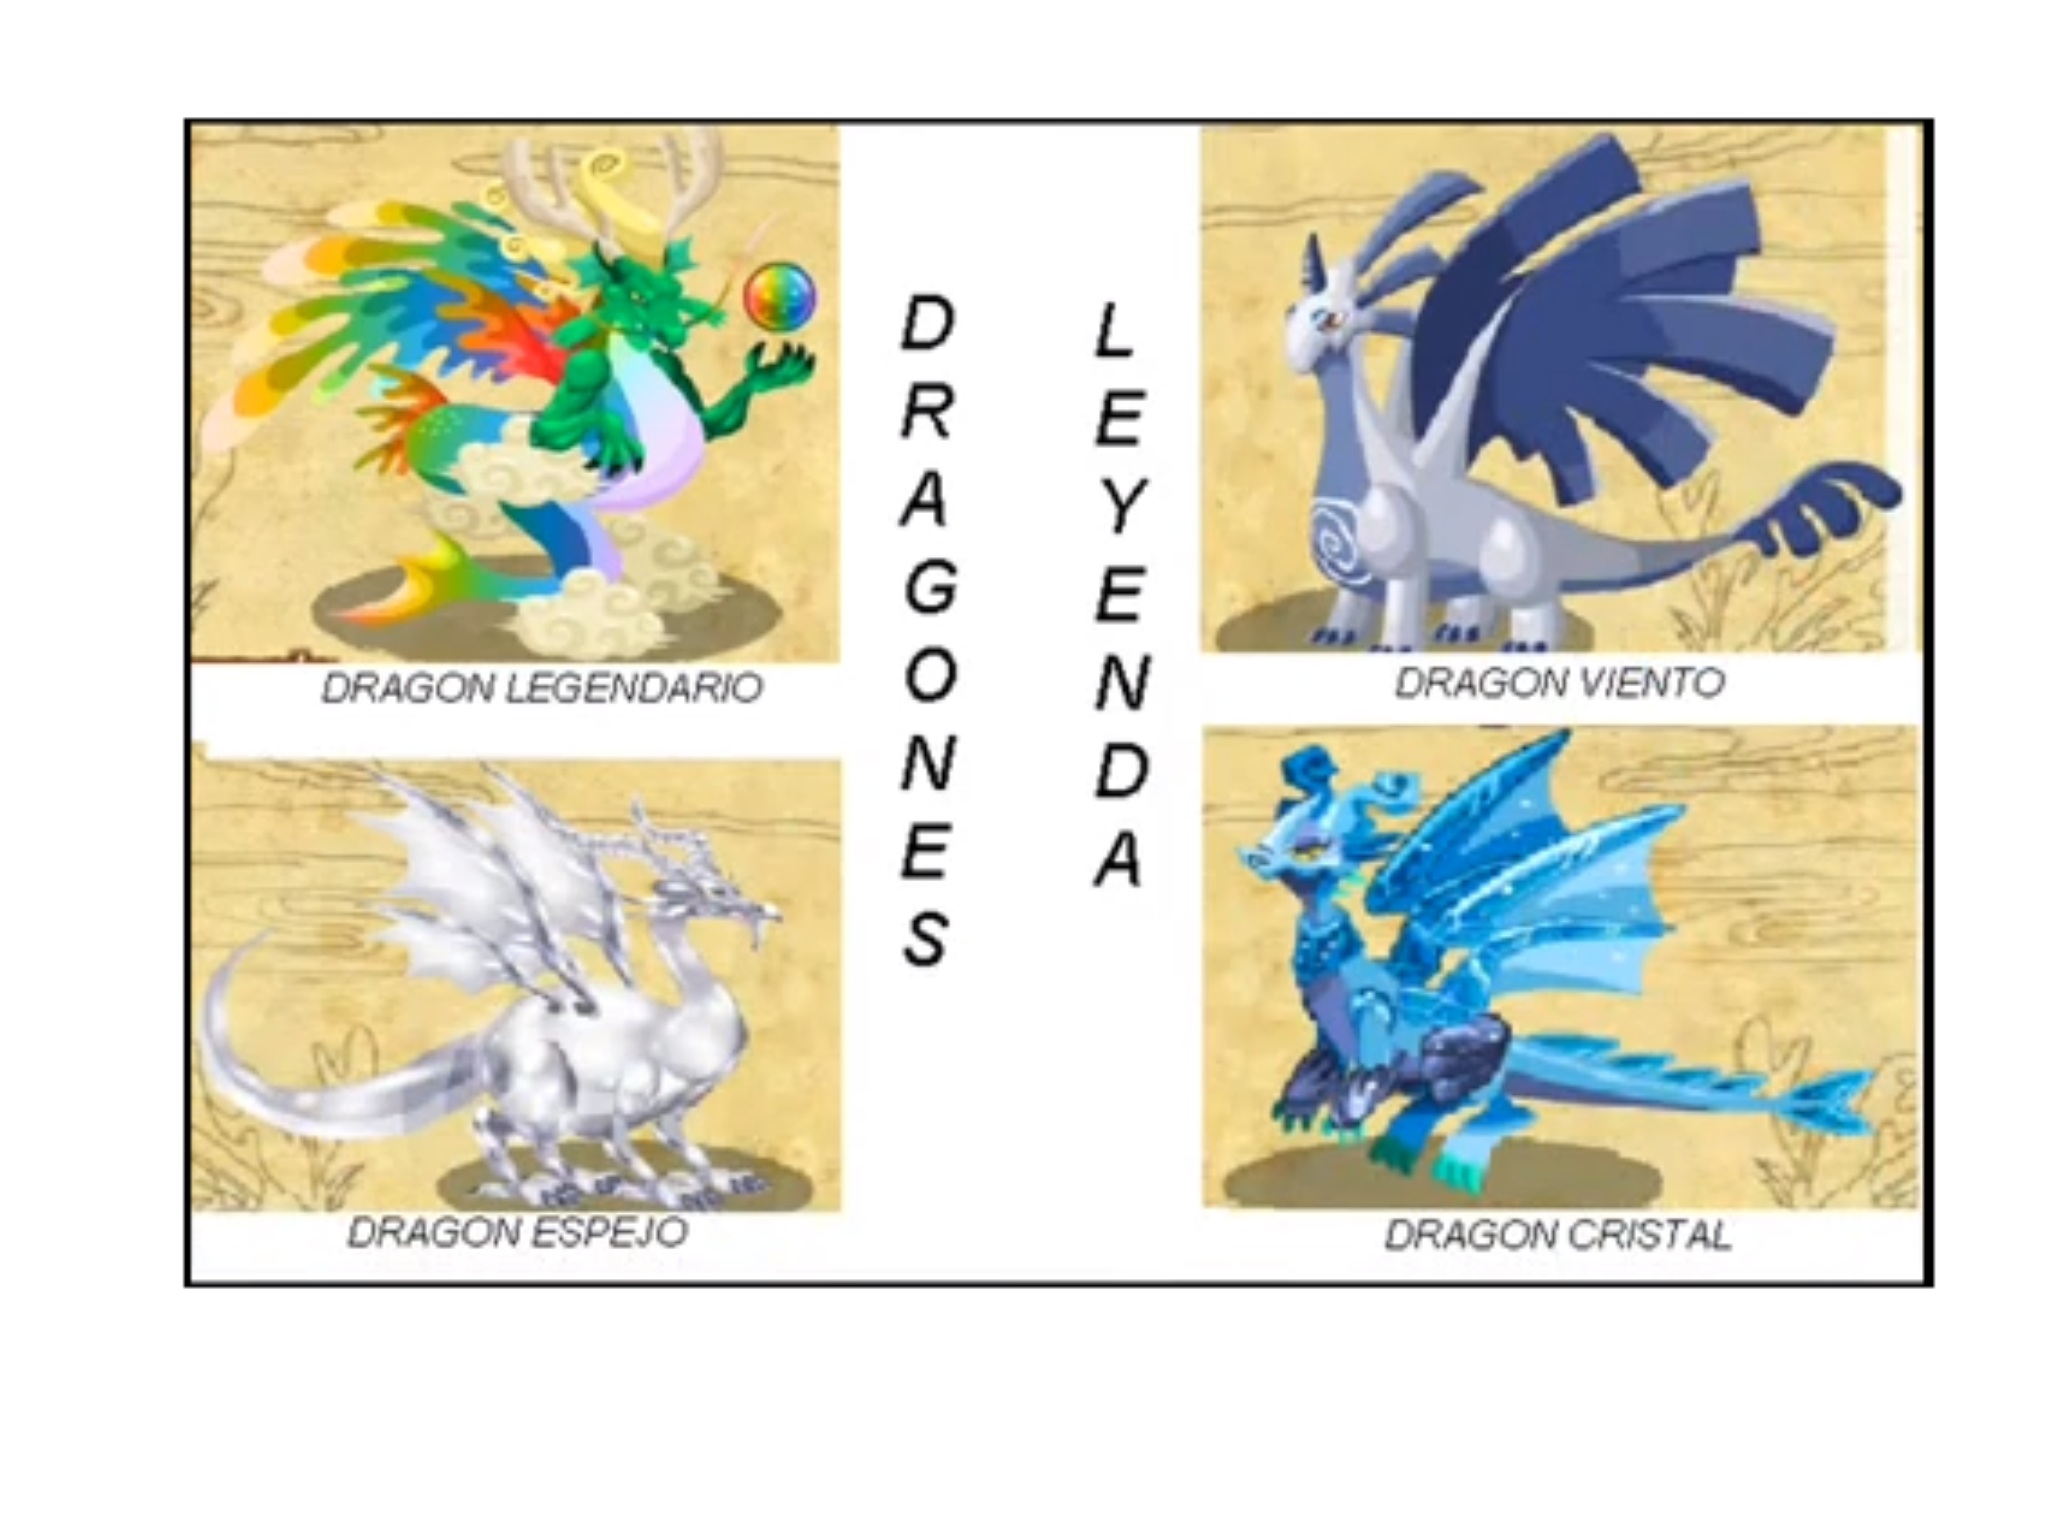 Usuario Blog:Daniel eduardo pj/DRAGONES LEGENDARIOS - Wiki Dragon City